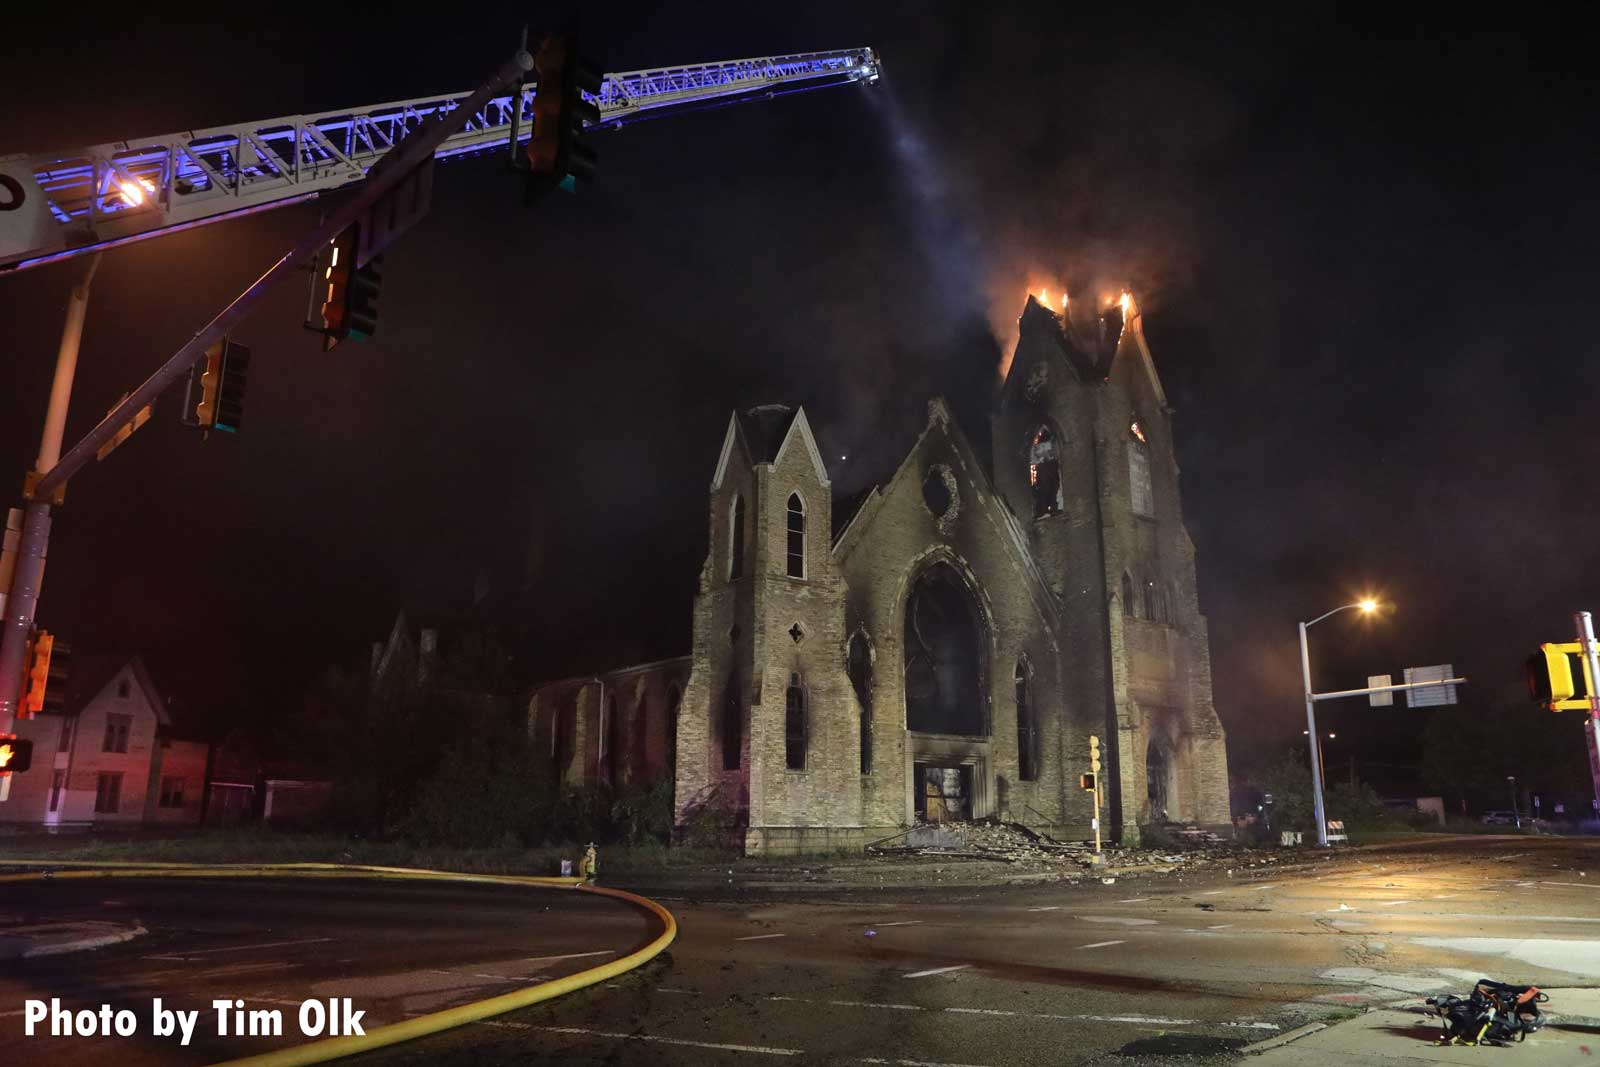 Elevated master stream used on church fire